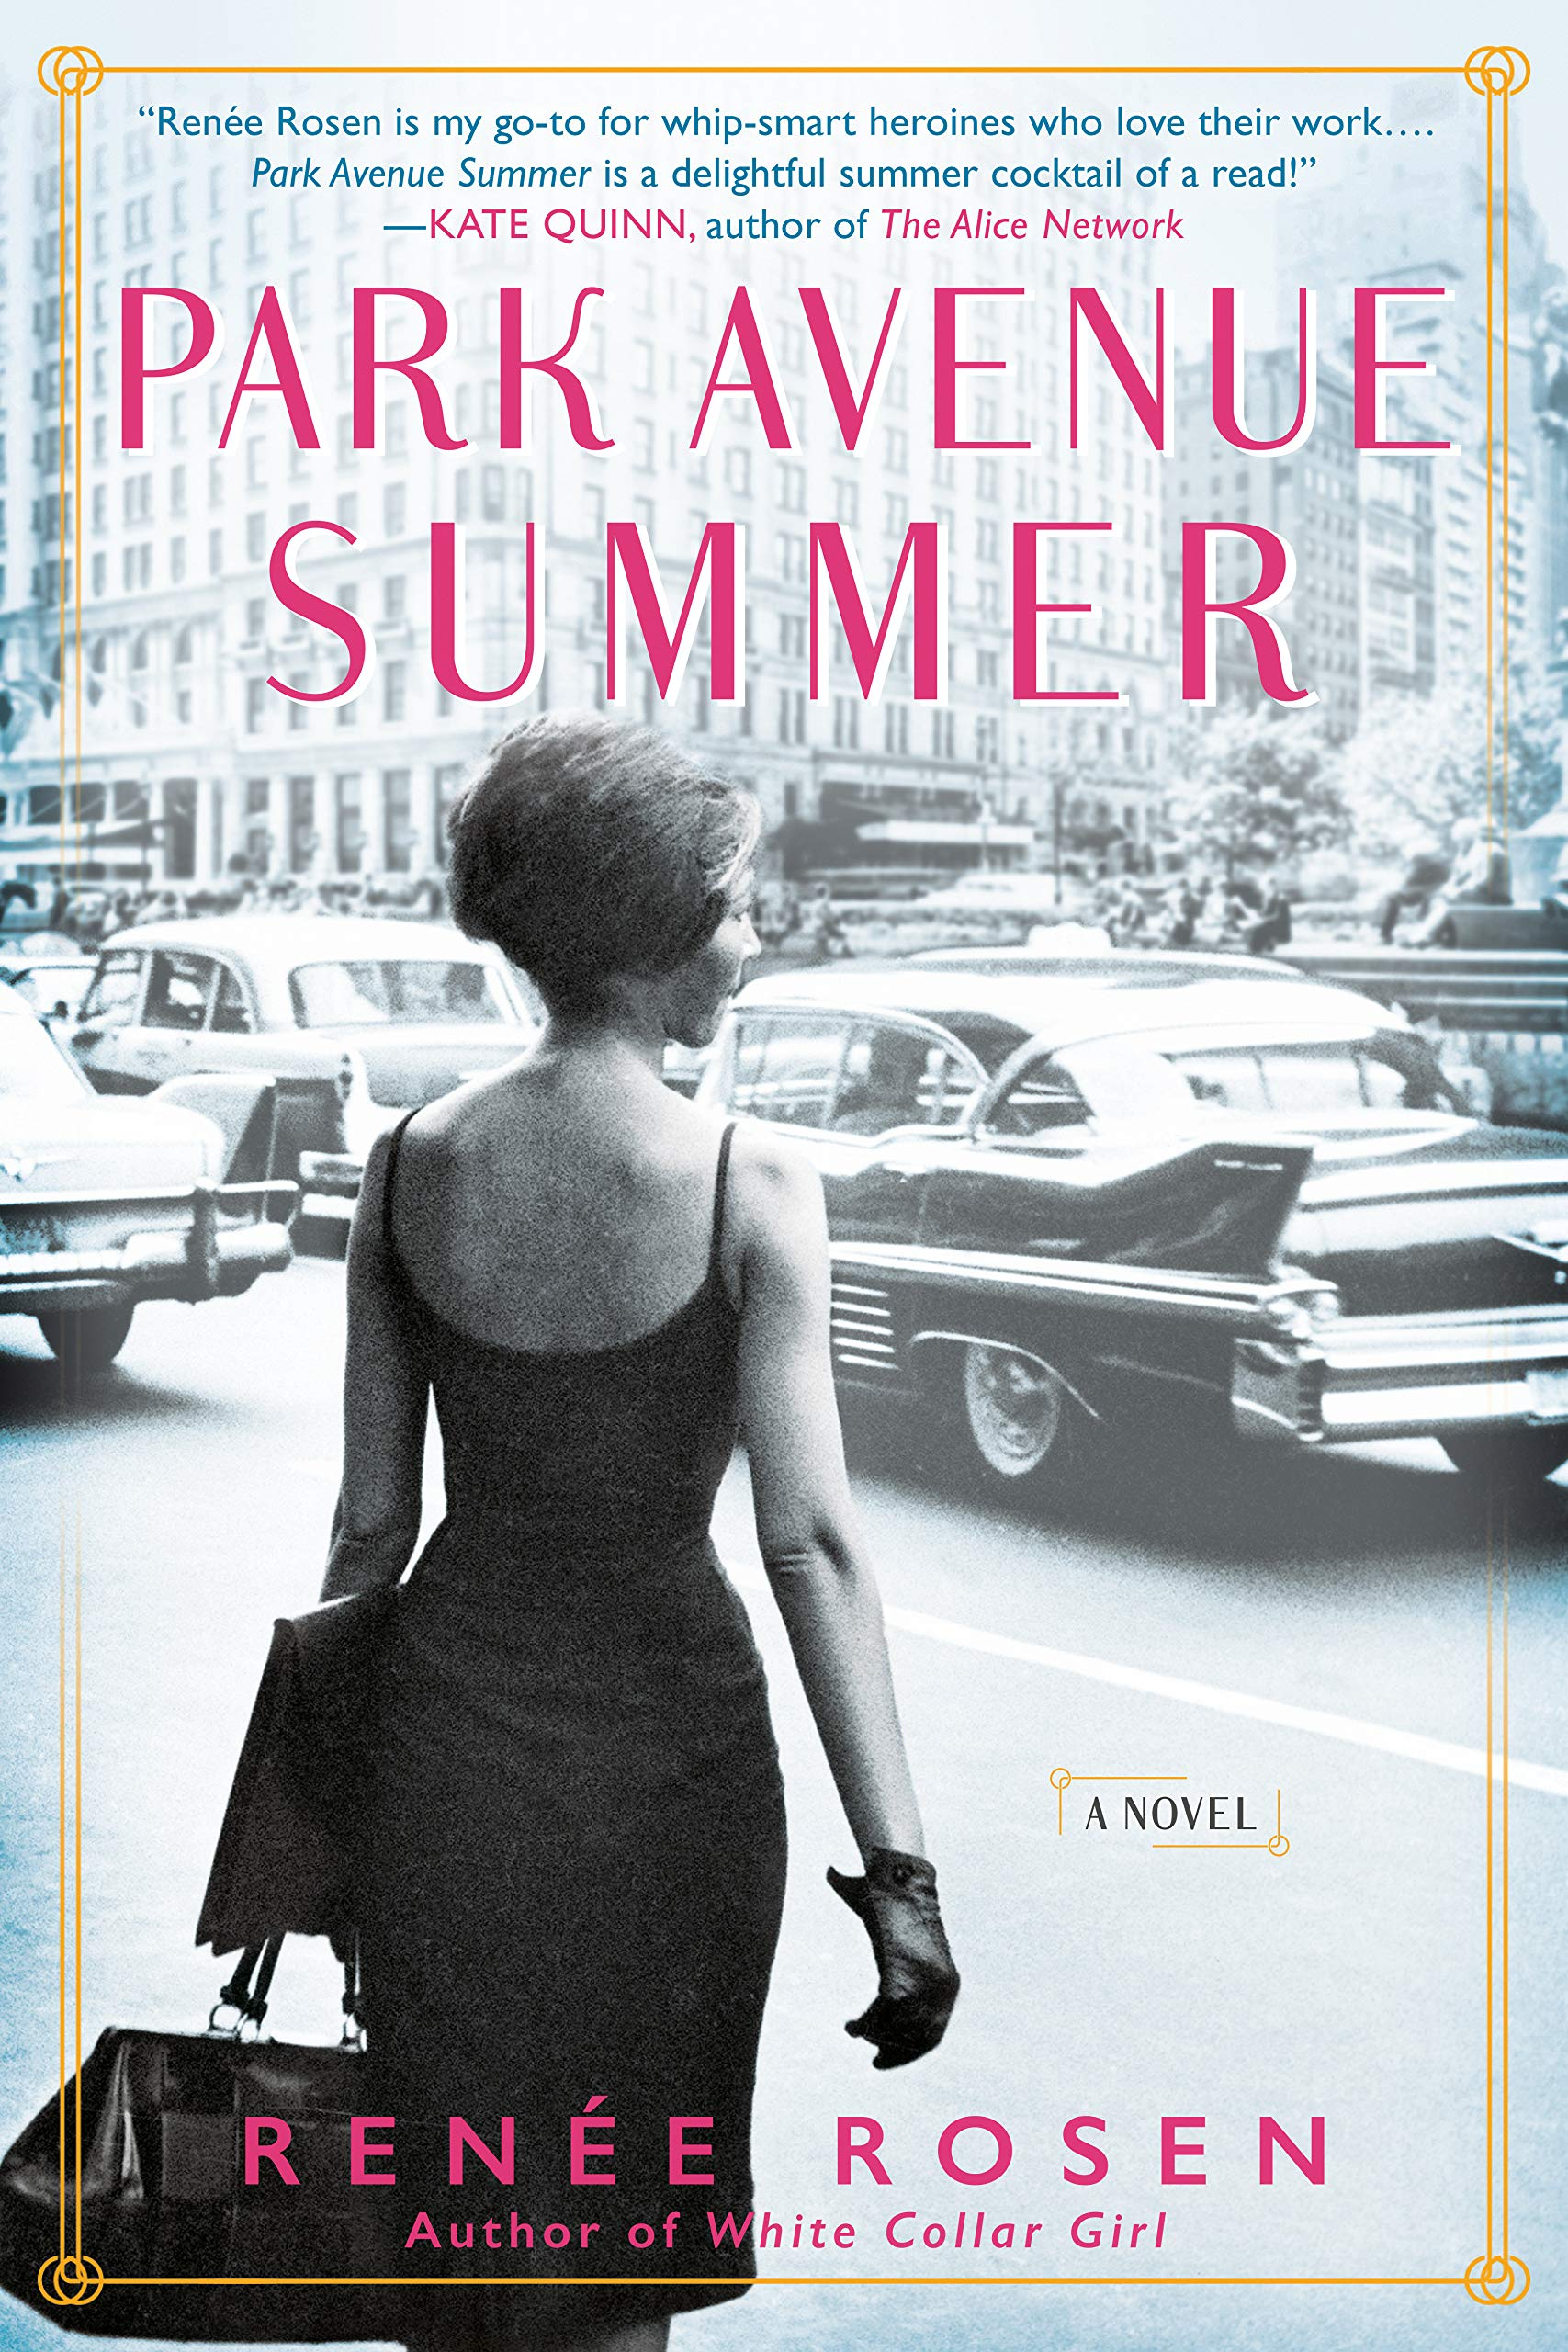 PARK AVENUE SUMMER by Renee Rosen